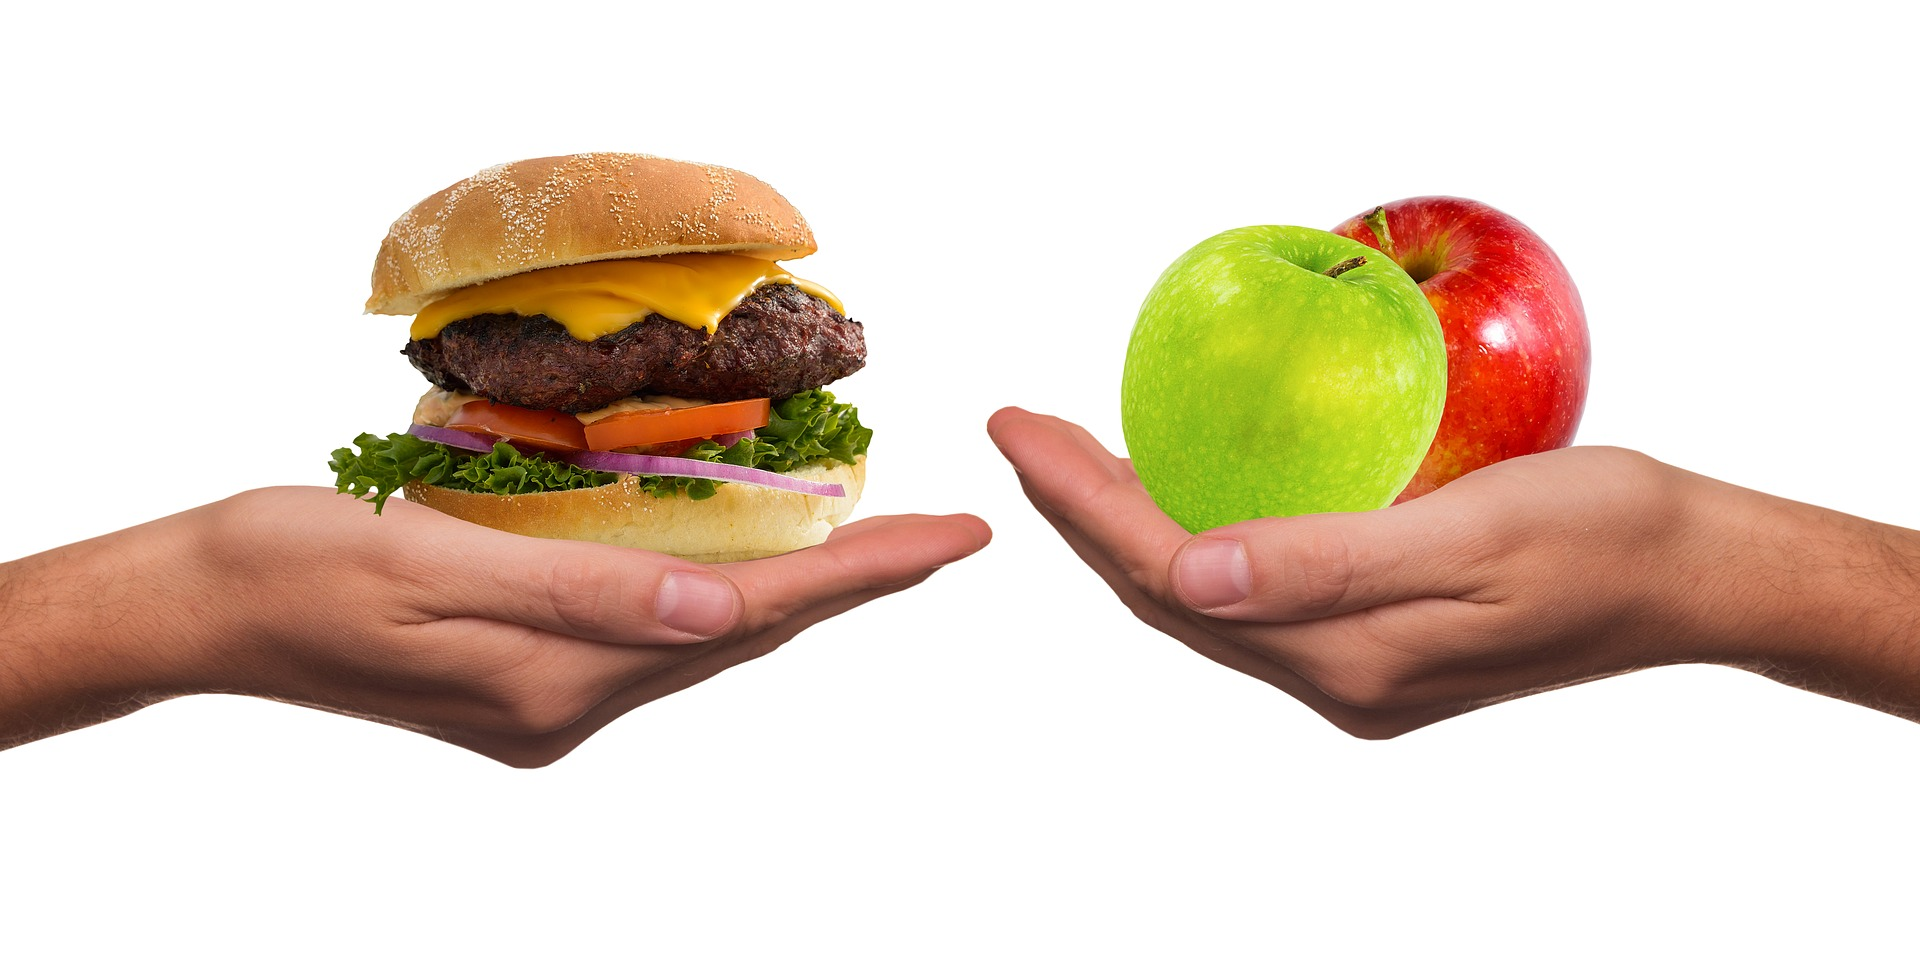 A burger and an apple, are you hungry